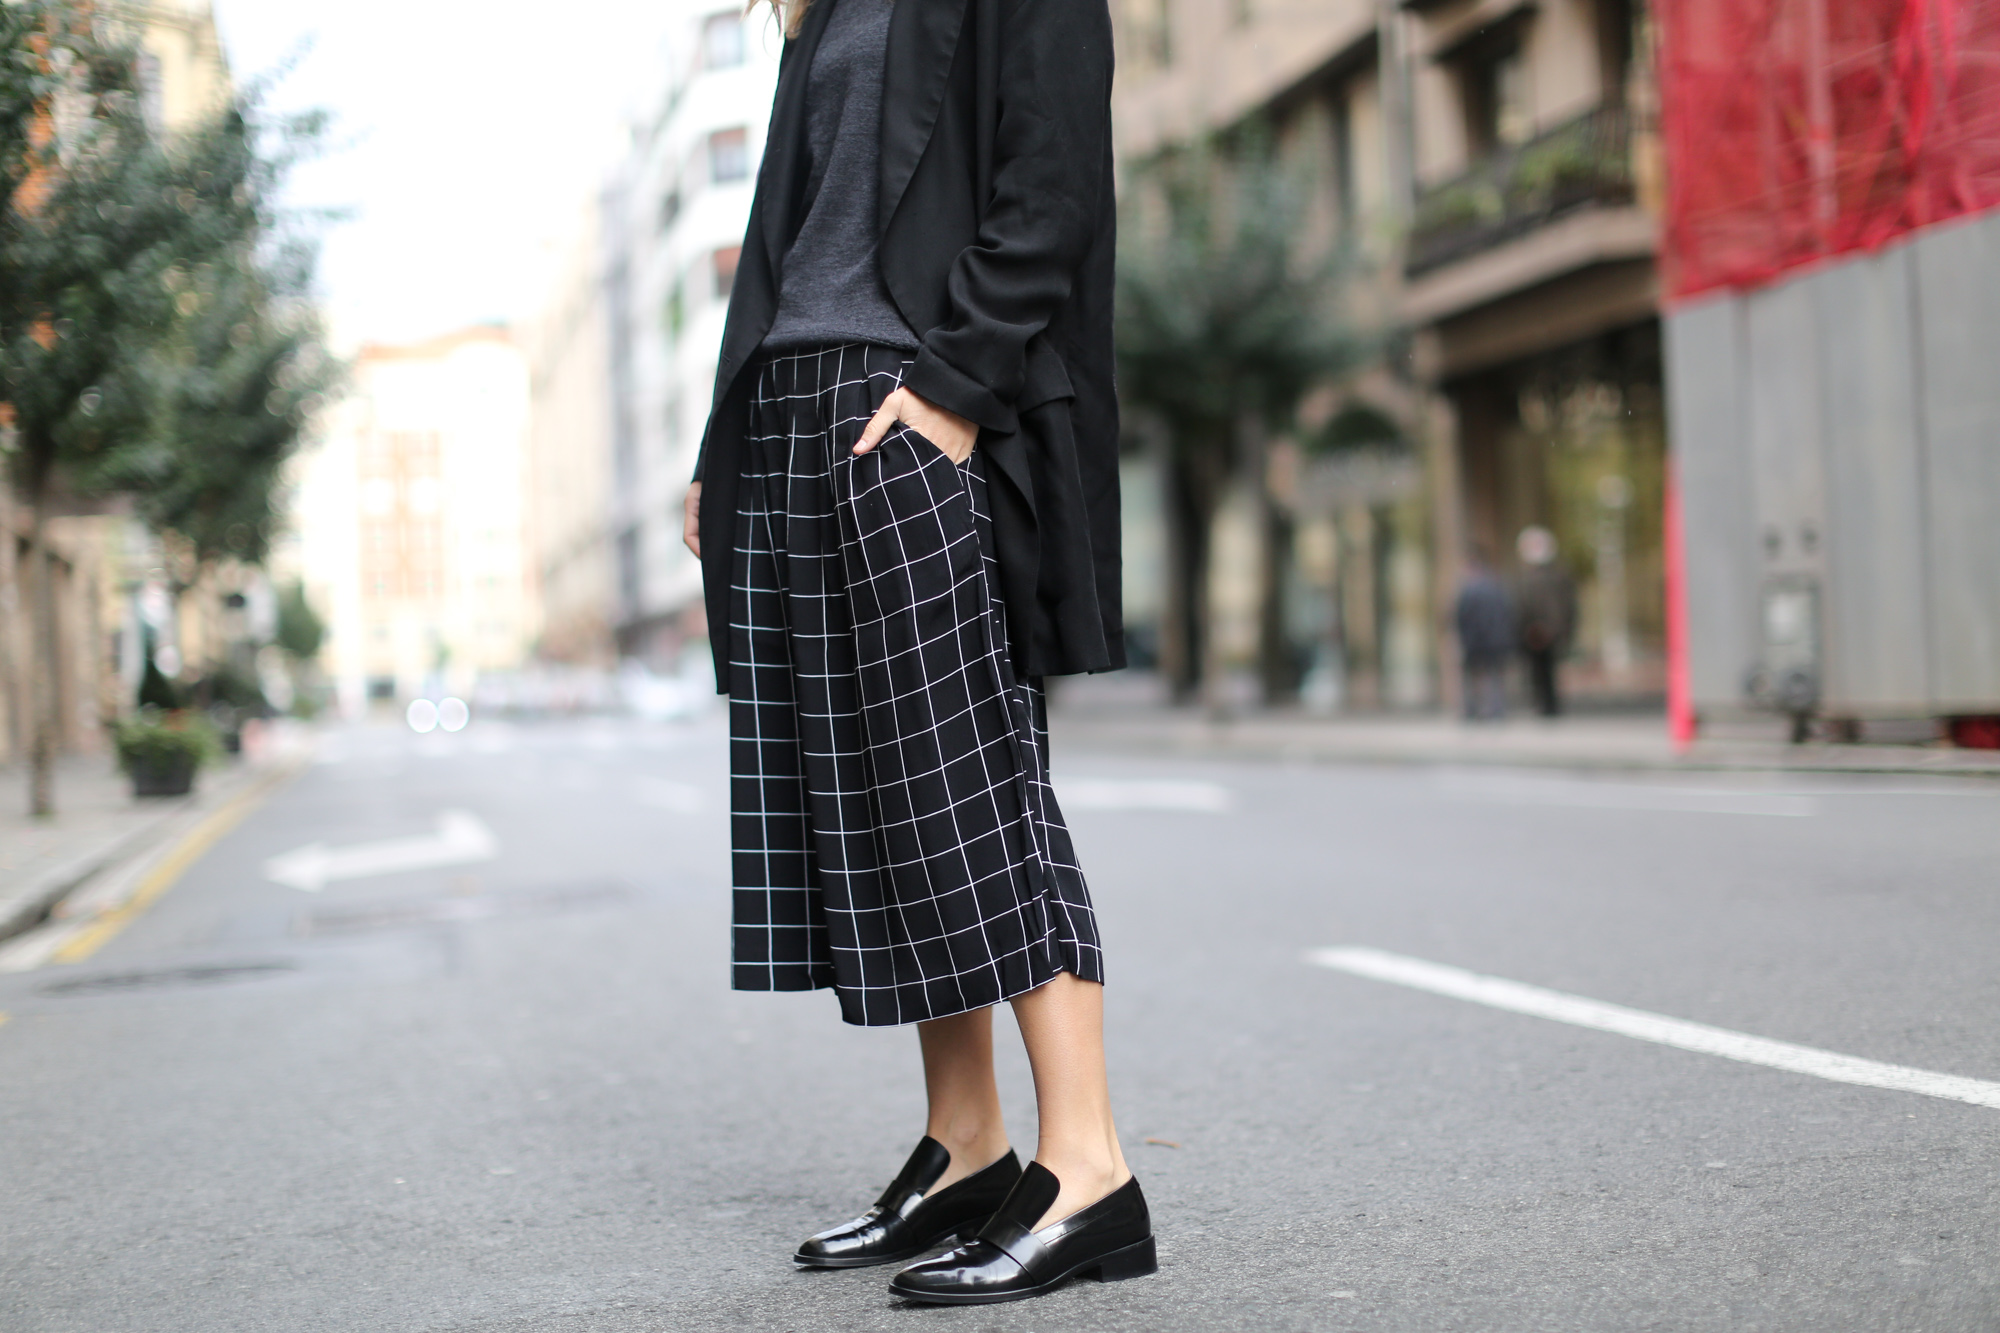 Clochet-streetstyle-monki-squared-black-white-culottes-lykke-li-and-other-stories-loafers-6